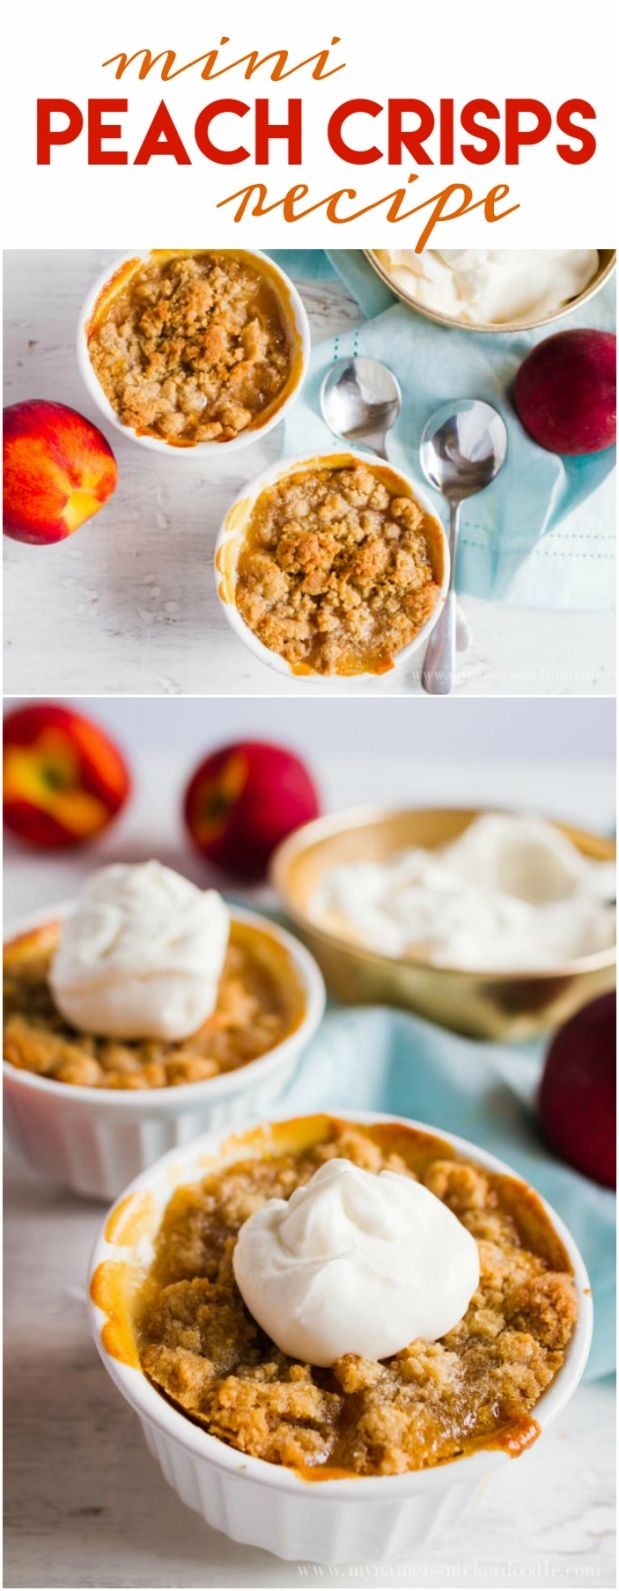 Mini Peach Crisps recipe. SO GOOD! You'll love this family favorite dish! Yummy summer dessert, great fall recipe too!